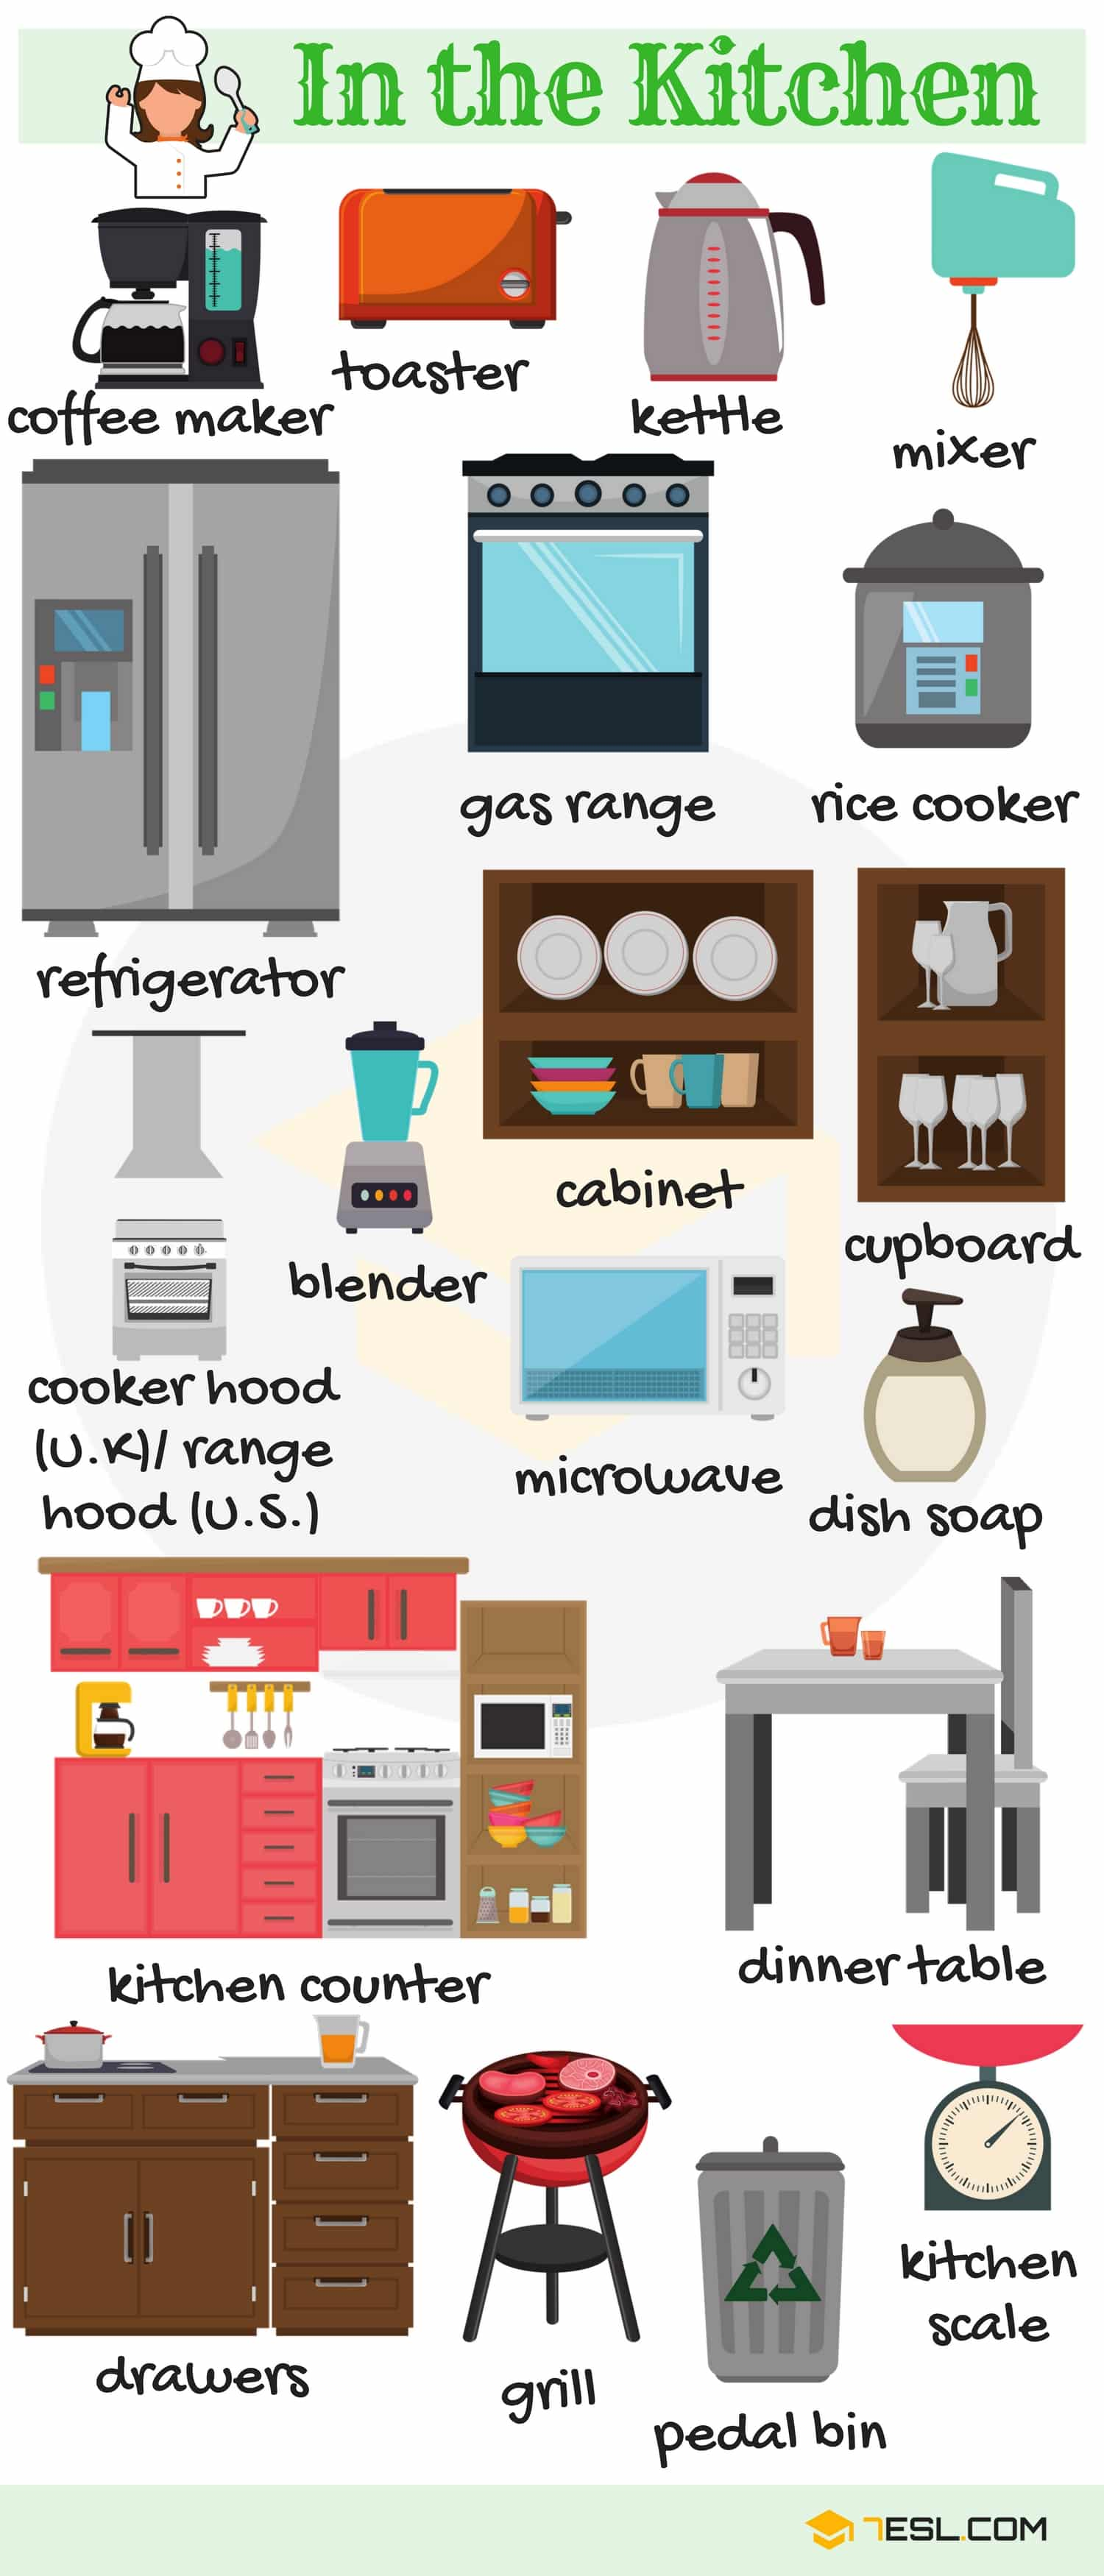 Kitchen Appliances: List of Kitchen Objects & Gadgets